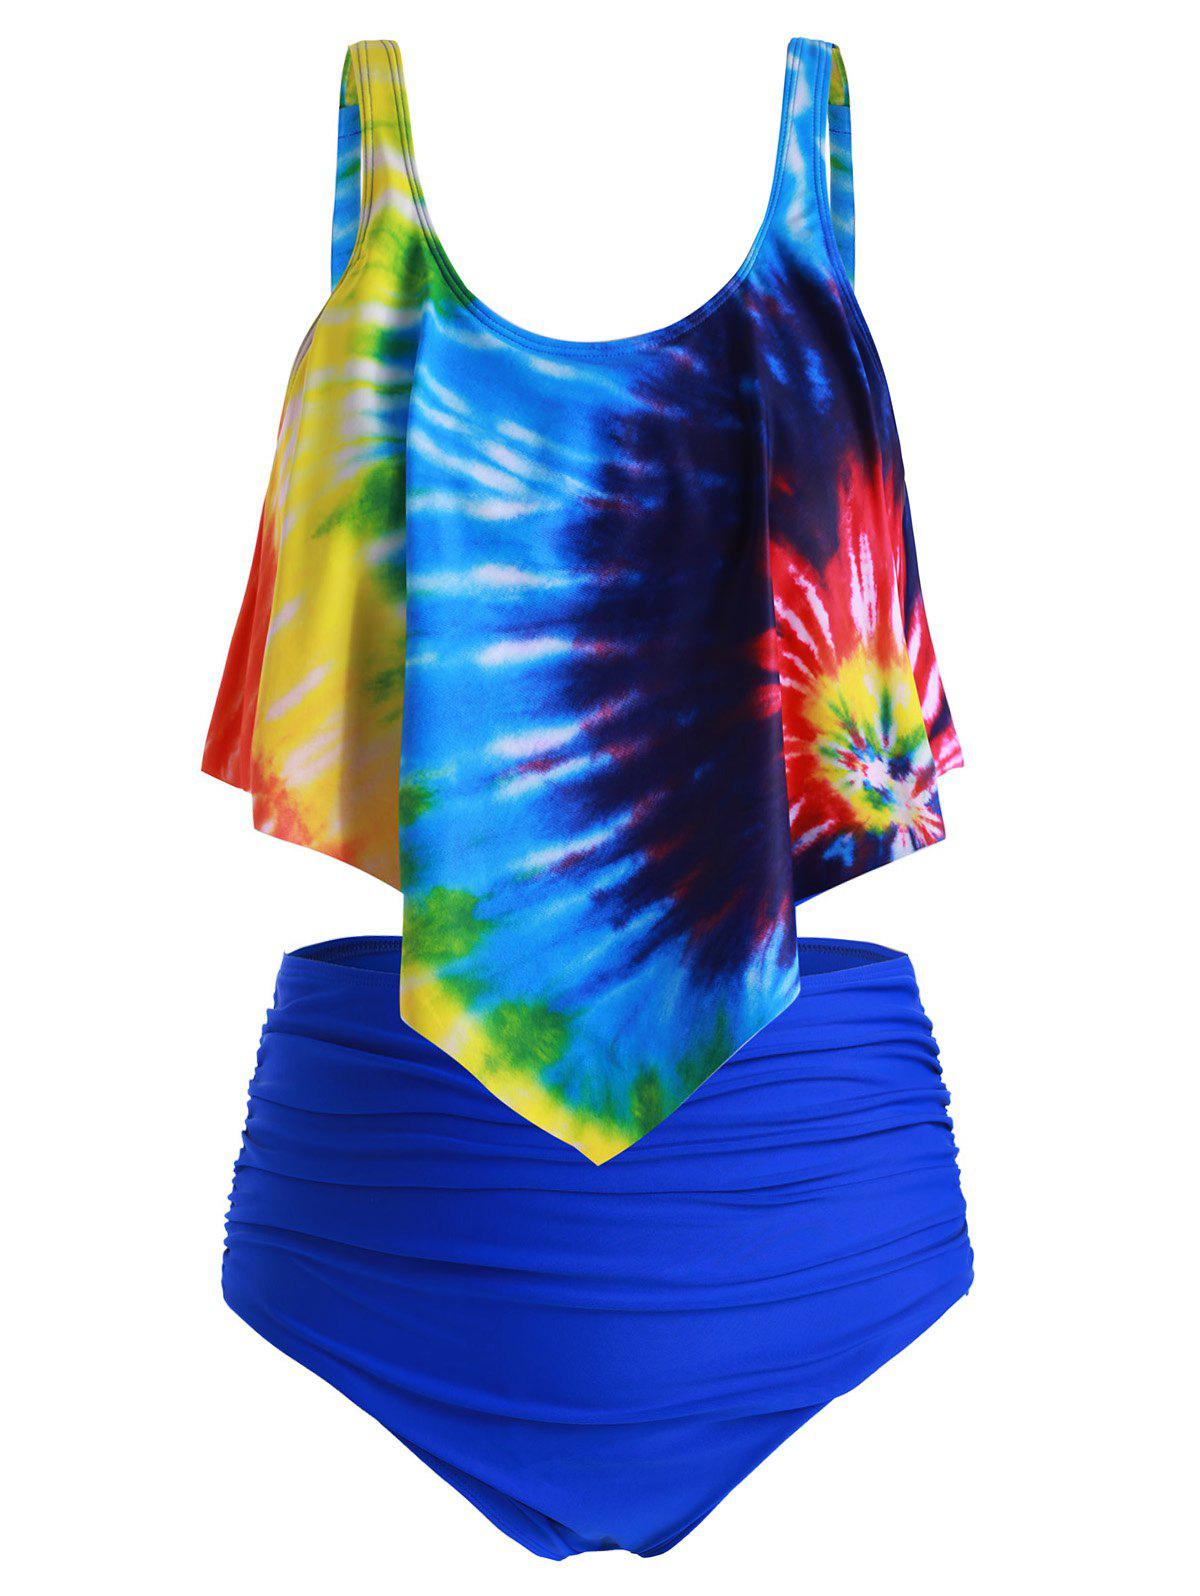 Plus Size Ruffled Tie Dye Ruched Tankini Swimsuit - multicolor B 2X